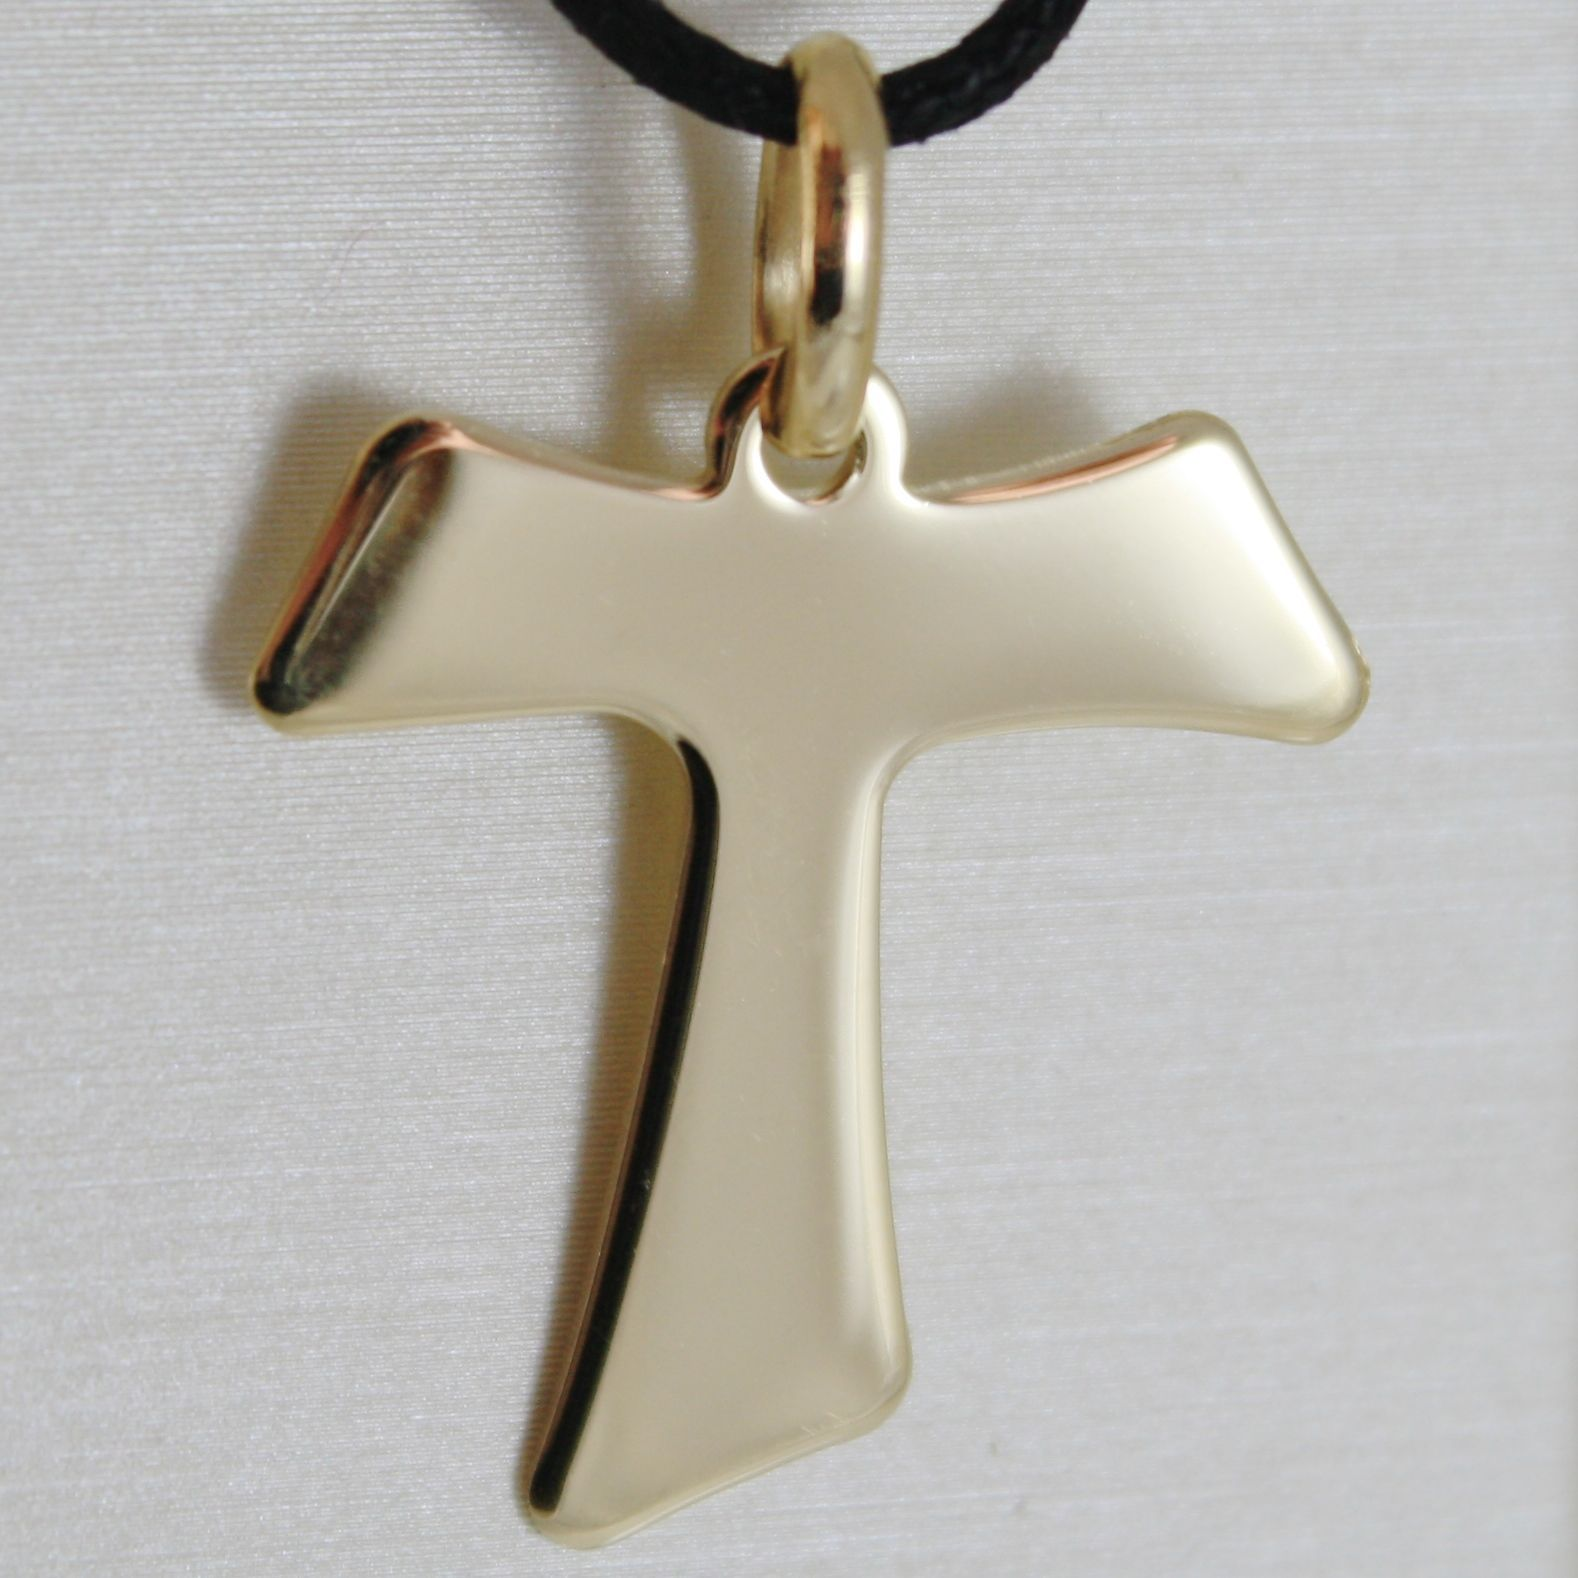 18K YELLOW GOLD CROSS FRANCISCAN TAU TAO SAINT FRANCIS 2.7 CM MADE IN ITALY